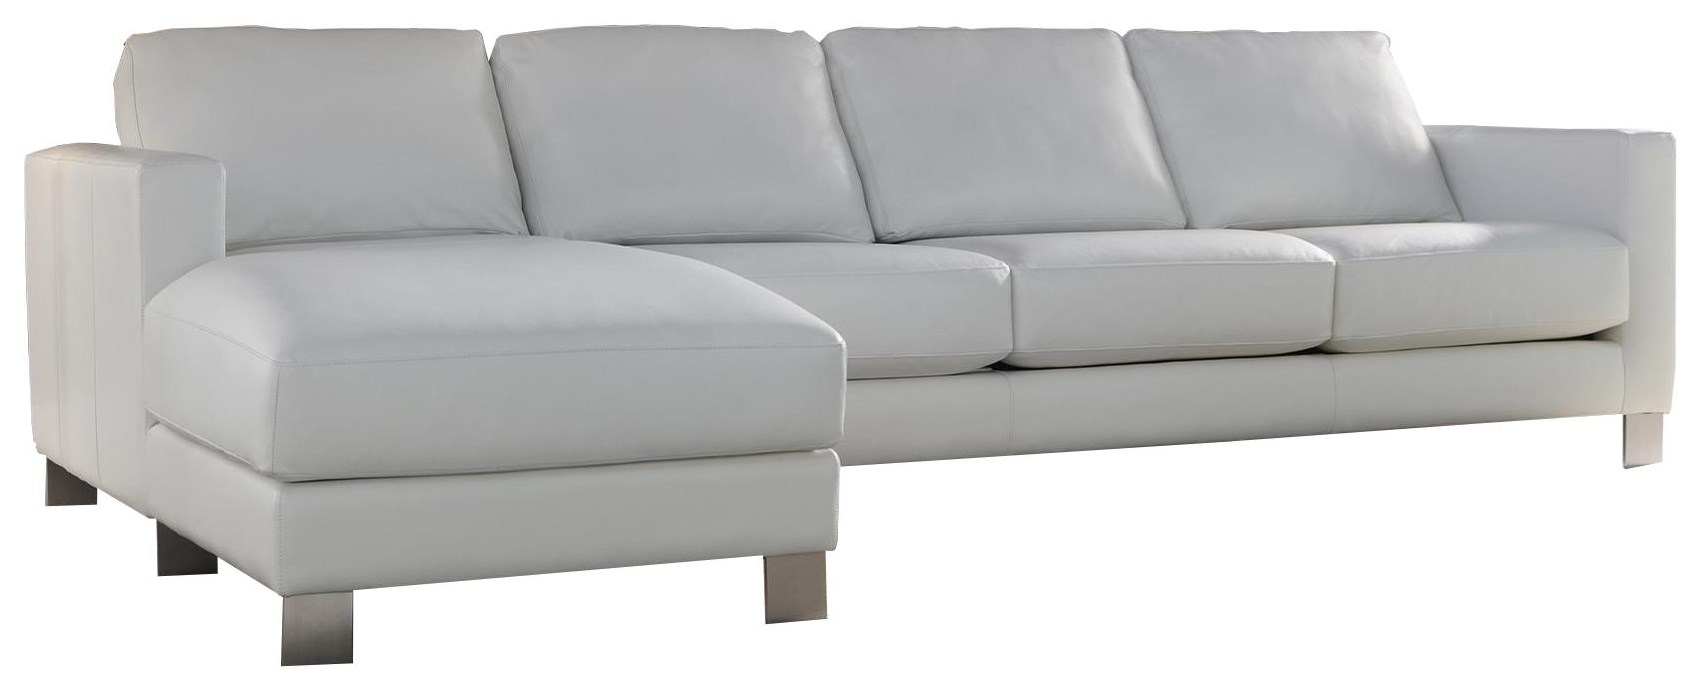 Alessandro Sofa with Chaise by American Leather at Williams & Kay